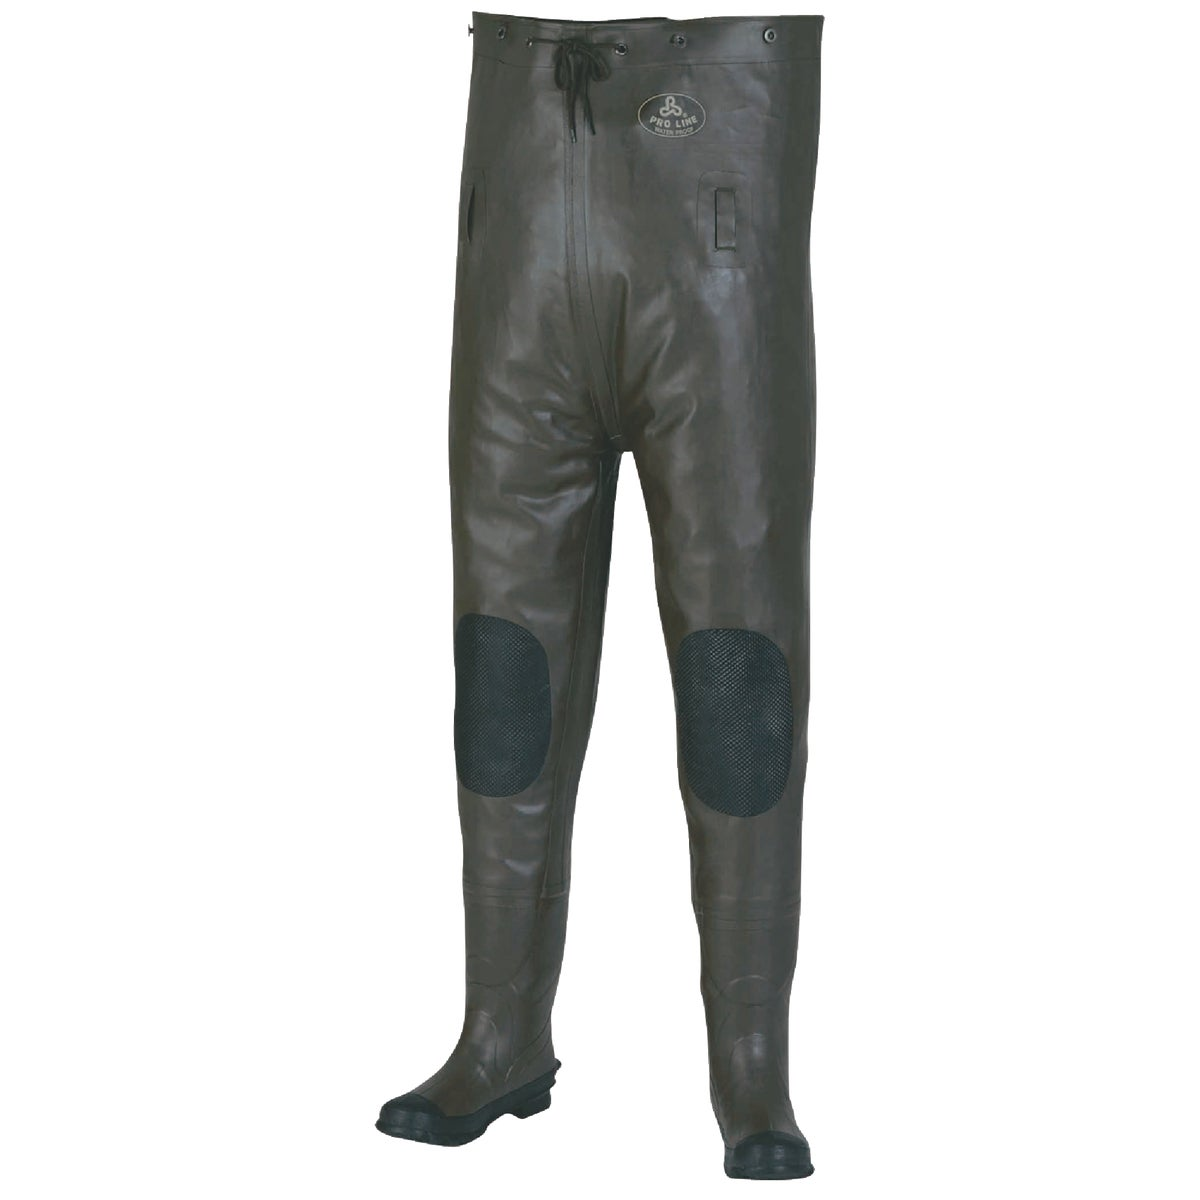 SZ 13 CHEST WADER - 2012-13 by Pro Line Mfg Co